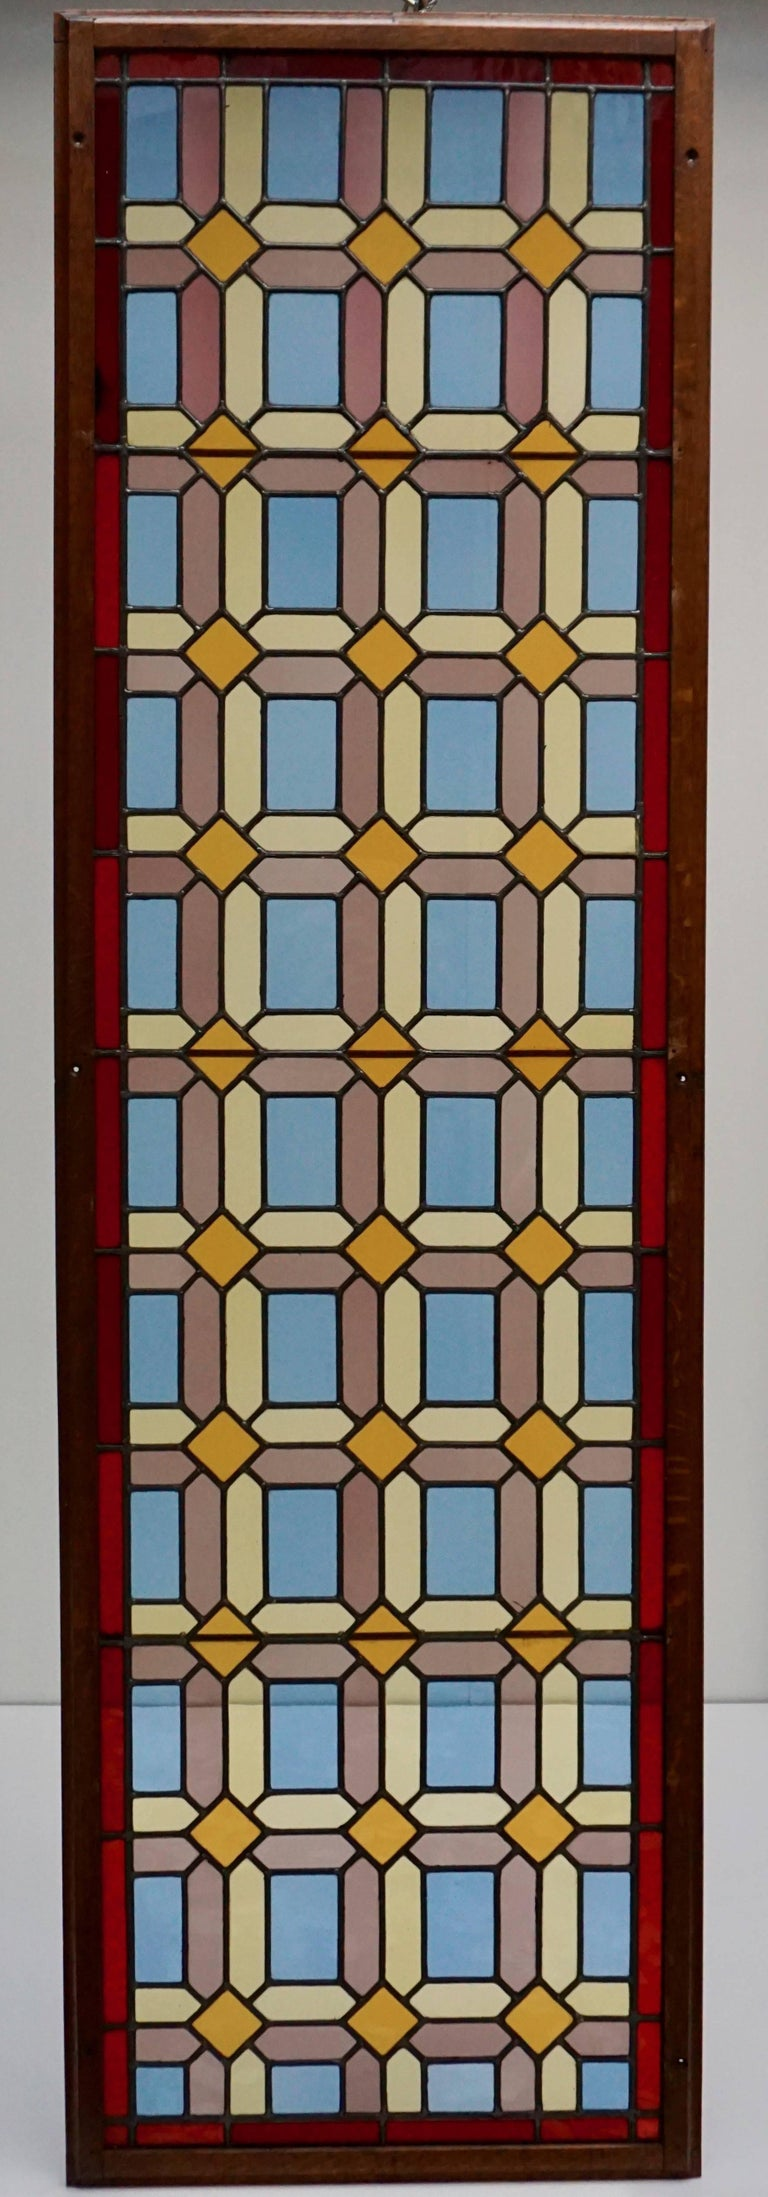 Art Deco One of Two Multicolored Stained Glass Windows Panels For Sale